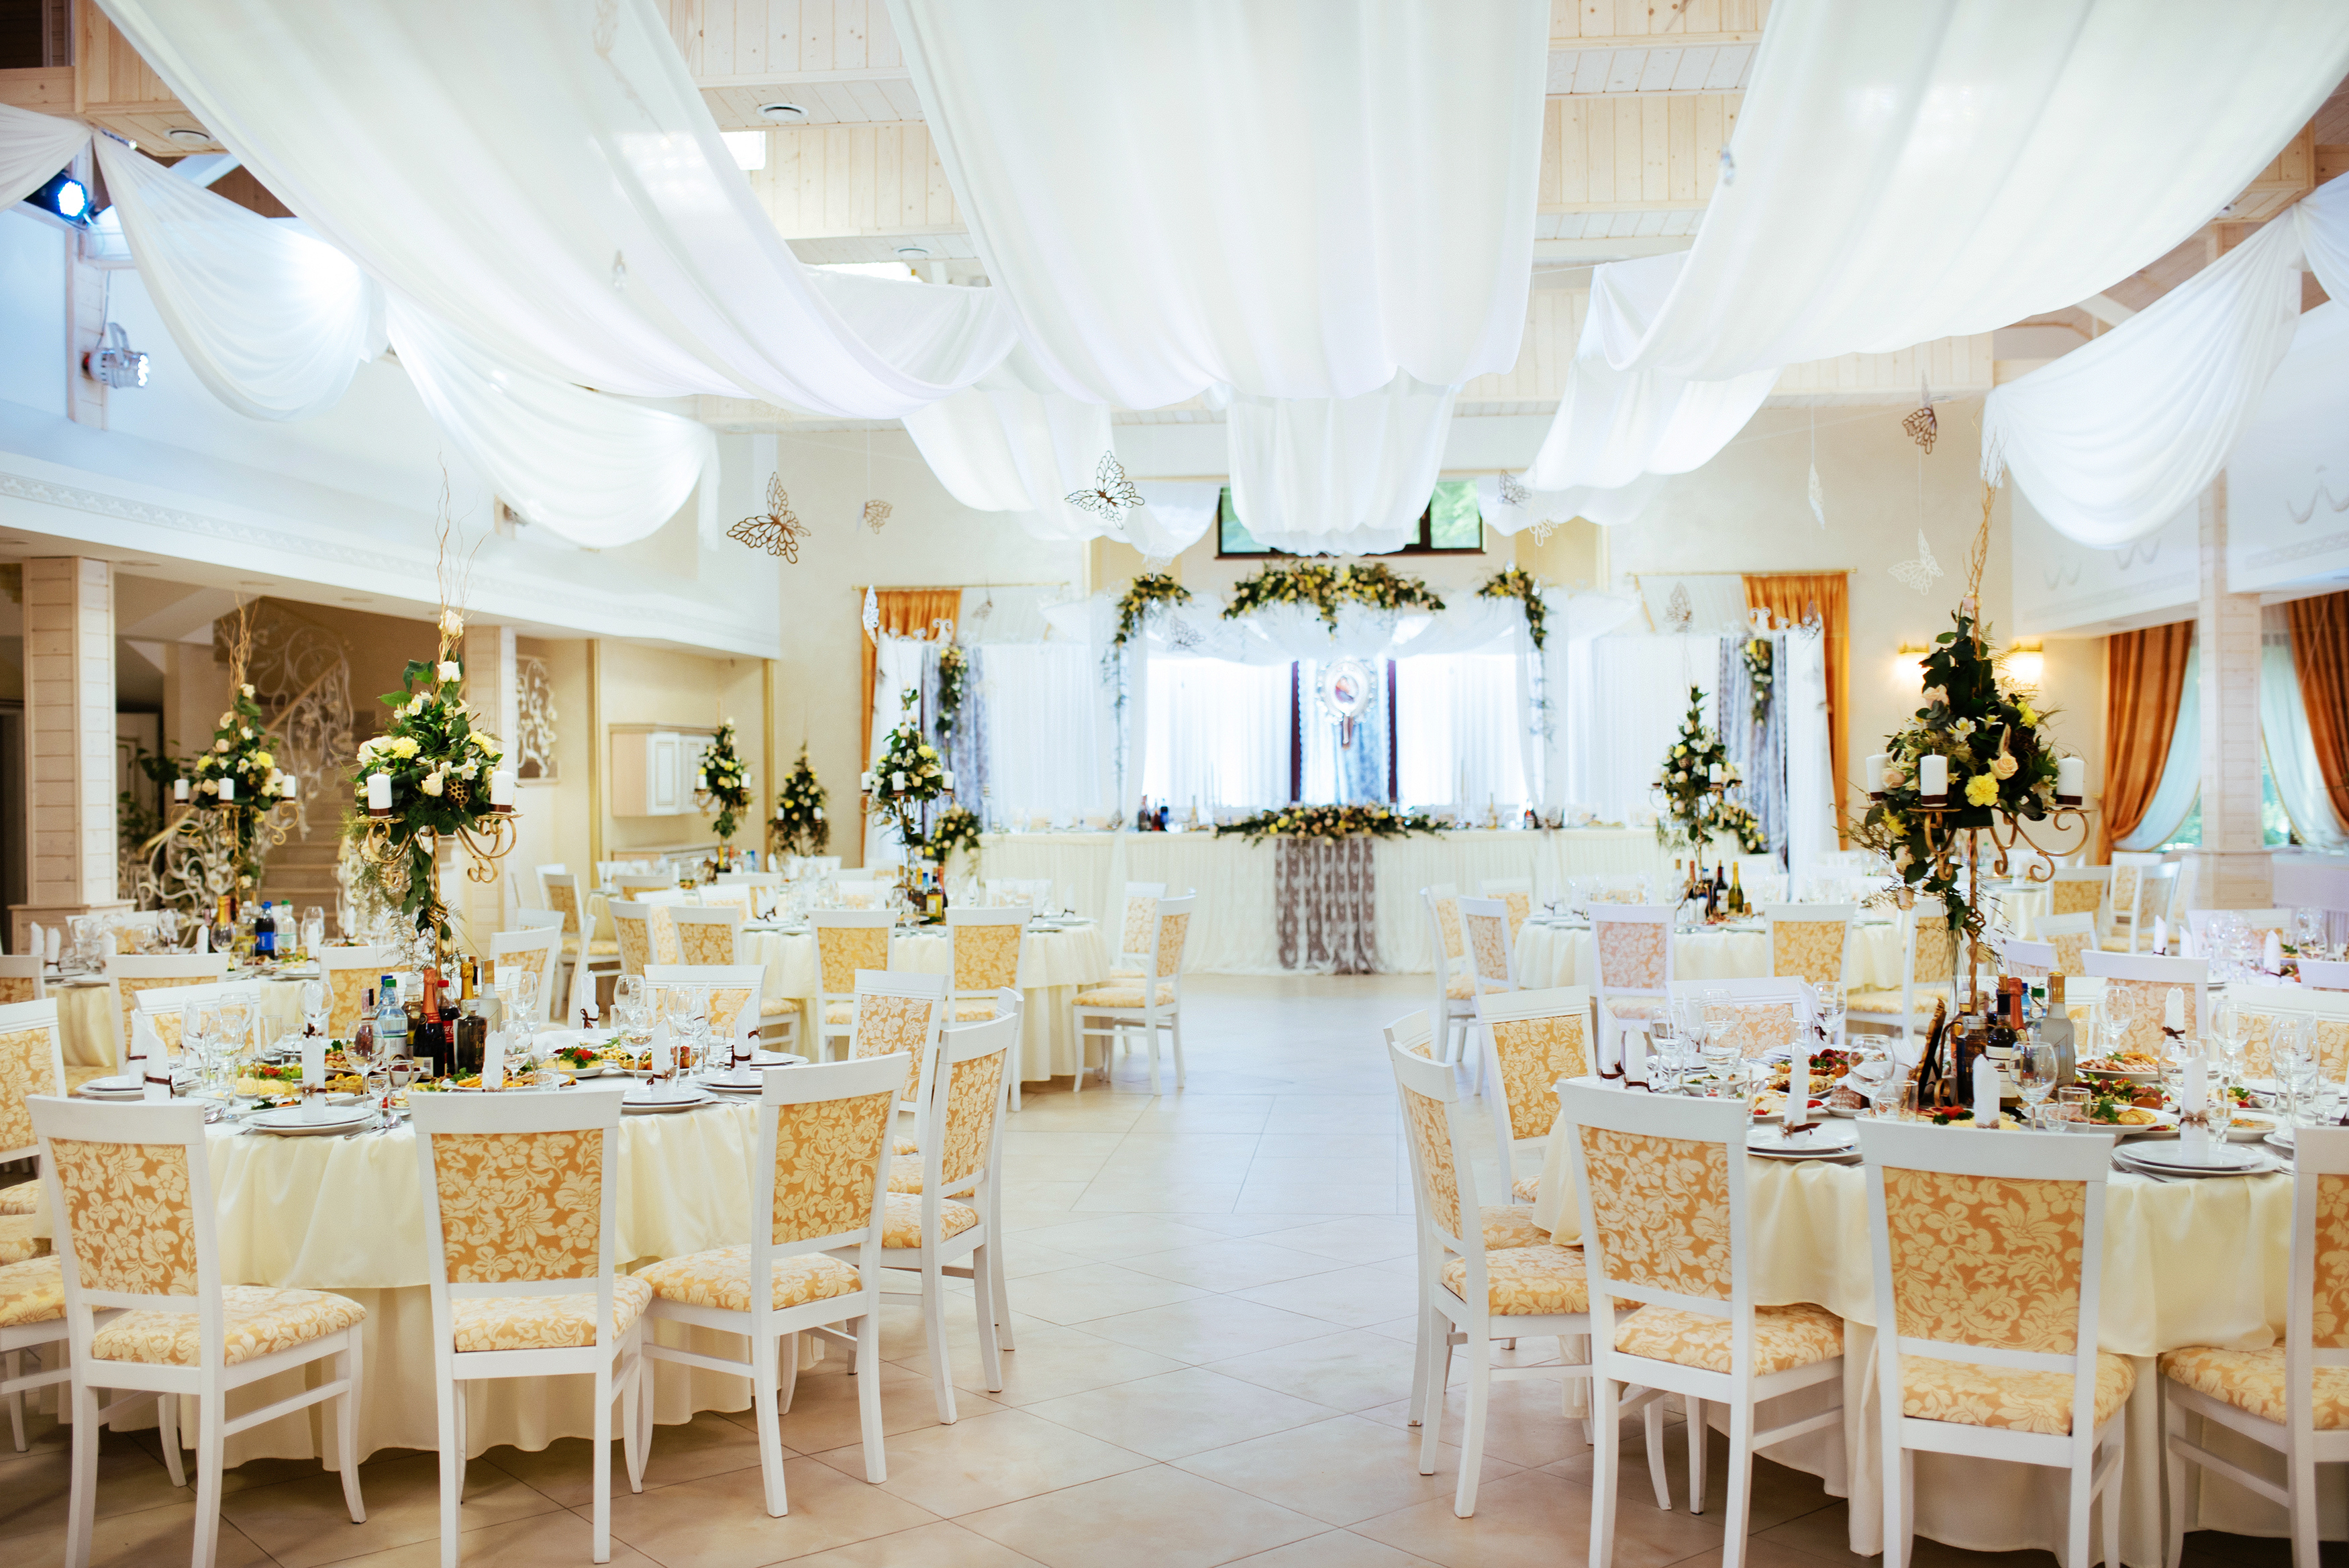 Table Layout of a Wedding Reception | LoveToKnow